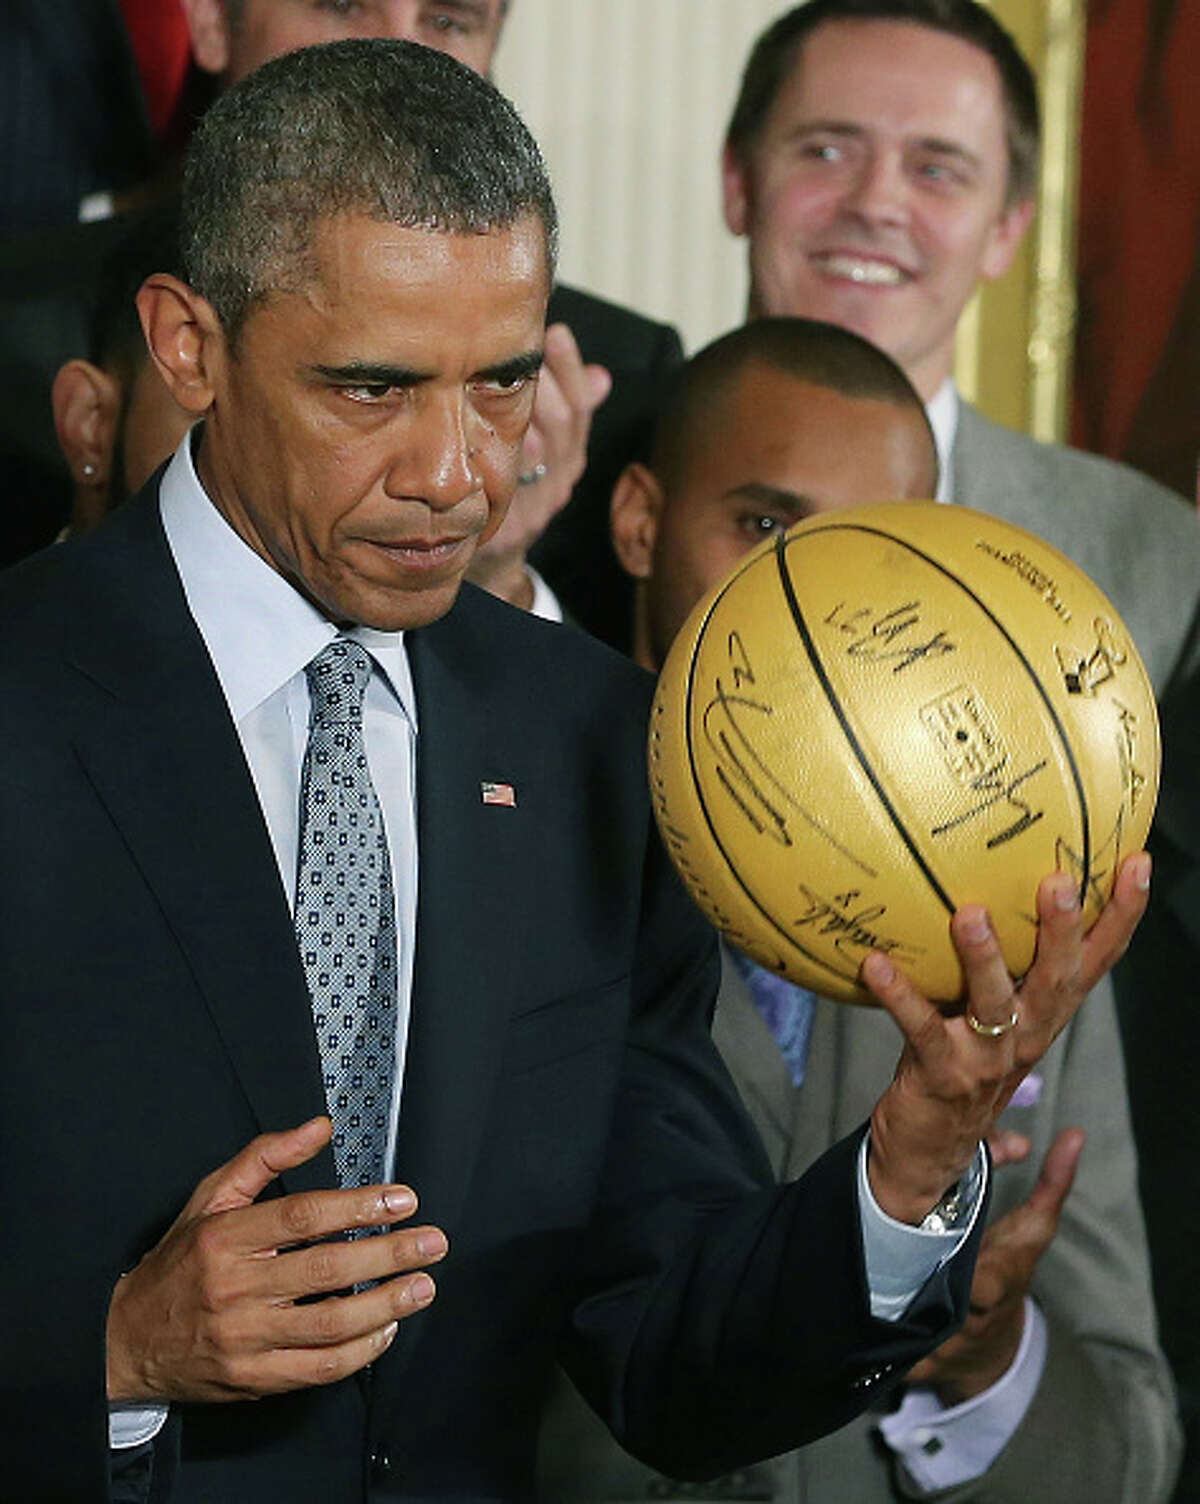 WASHINGTON, DC - JANUARY 12: U.S. President Barack Obama holds a basketball given to him by the 2014 NBA Champion San Antonio Spurs during an event in the East Room at the White House, January 12, 2015 in Washington, DC. President Obama honored the Spurs for winning their fifth NBA championship by beating the Miami Heat in game five with a 104-87 victory. (Photo by Mark Wilson/Getty Images)